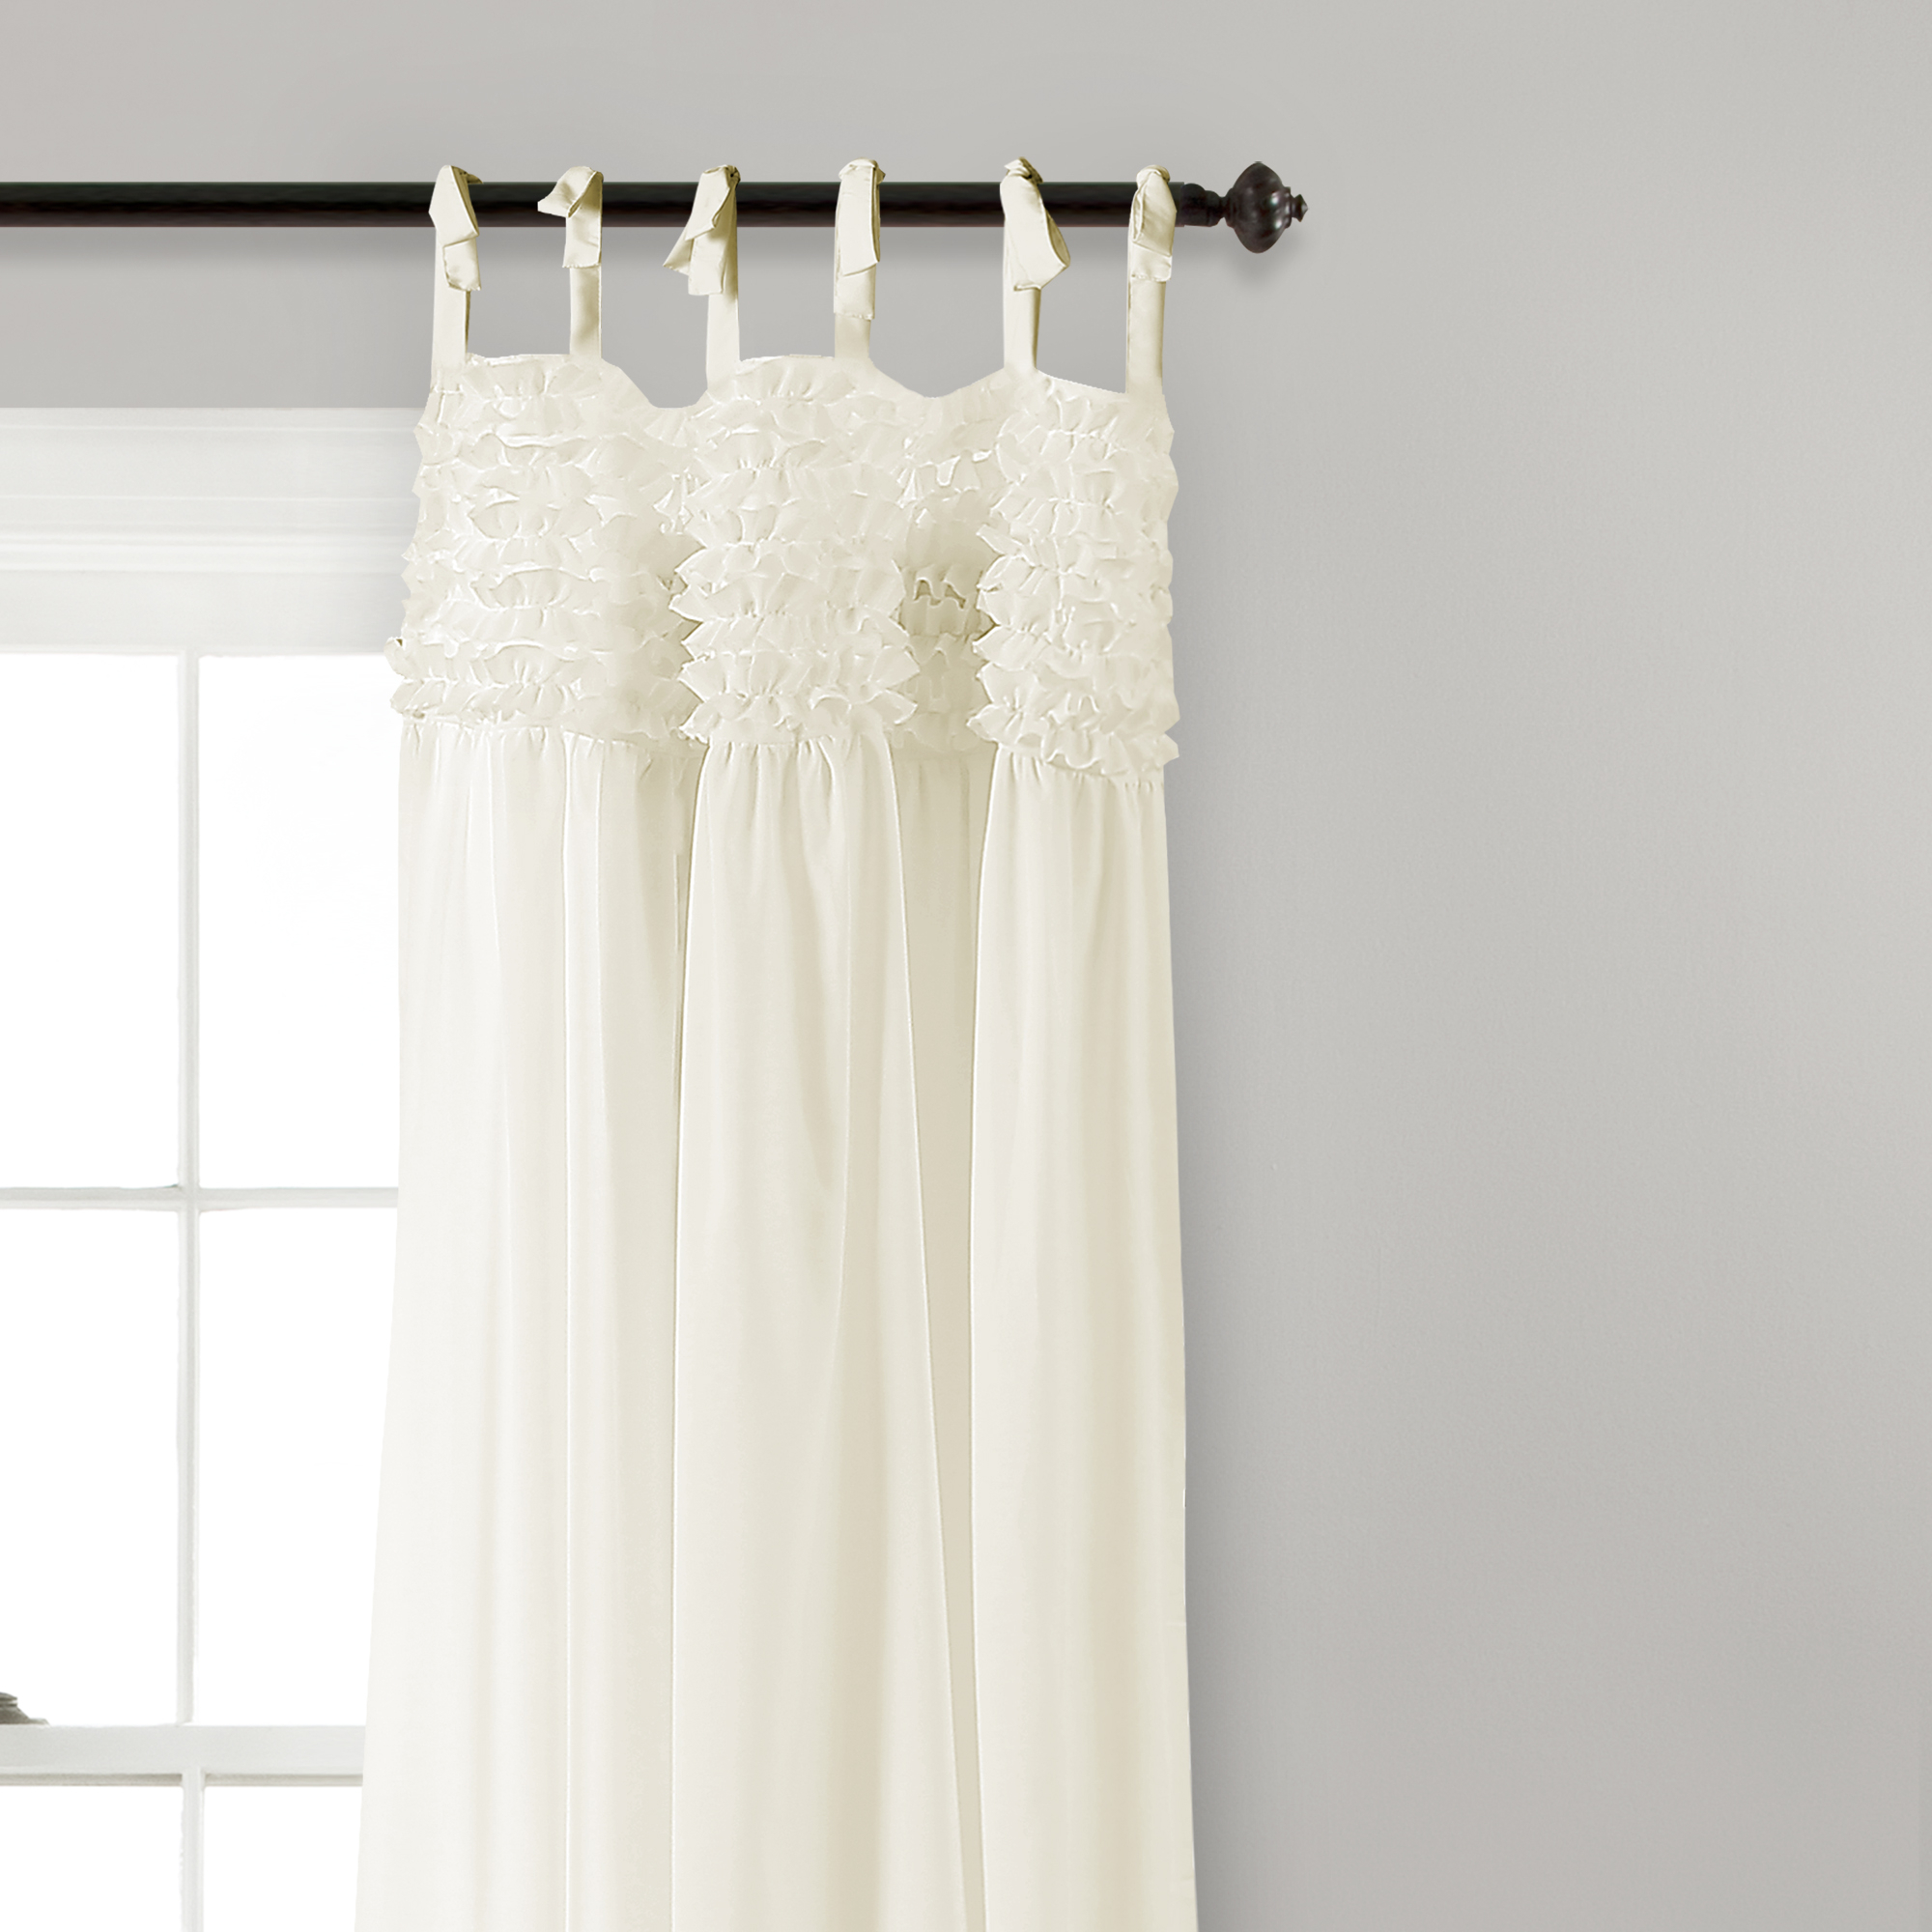 Details About Lydia Ruffle Window Curtain Panels Ivory Set 40x84 Pertaining To Lydia Ruffle Window Curtain Panel Pairs (View 3 of 20)